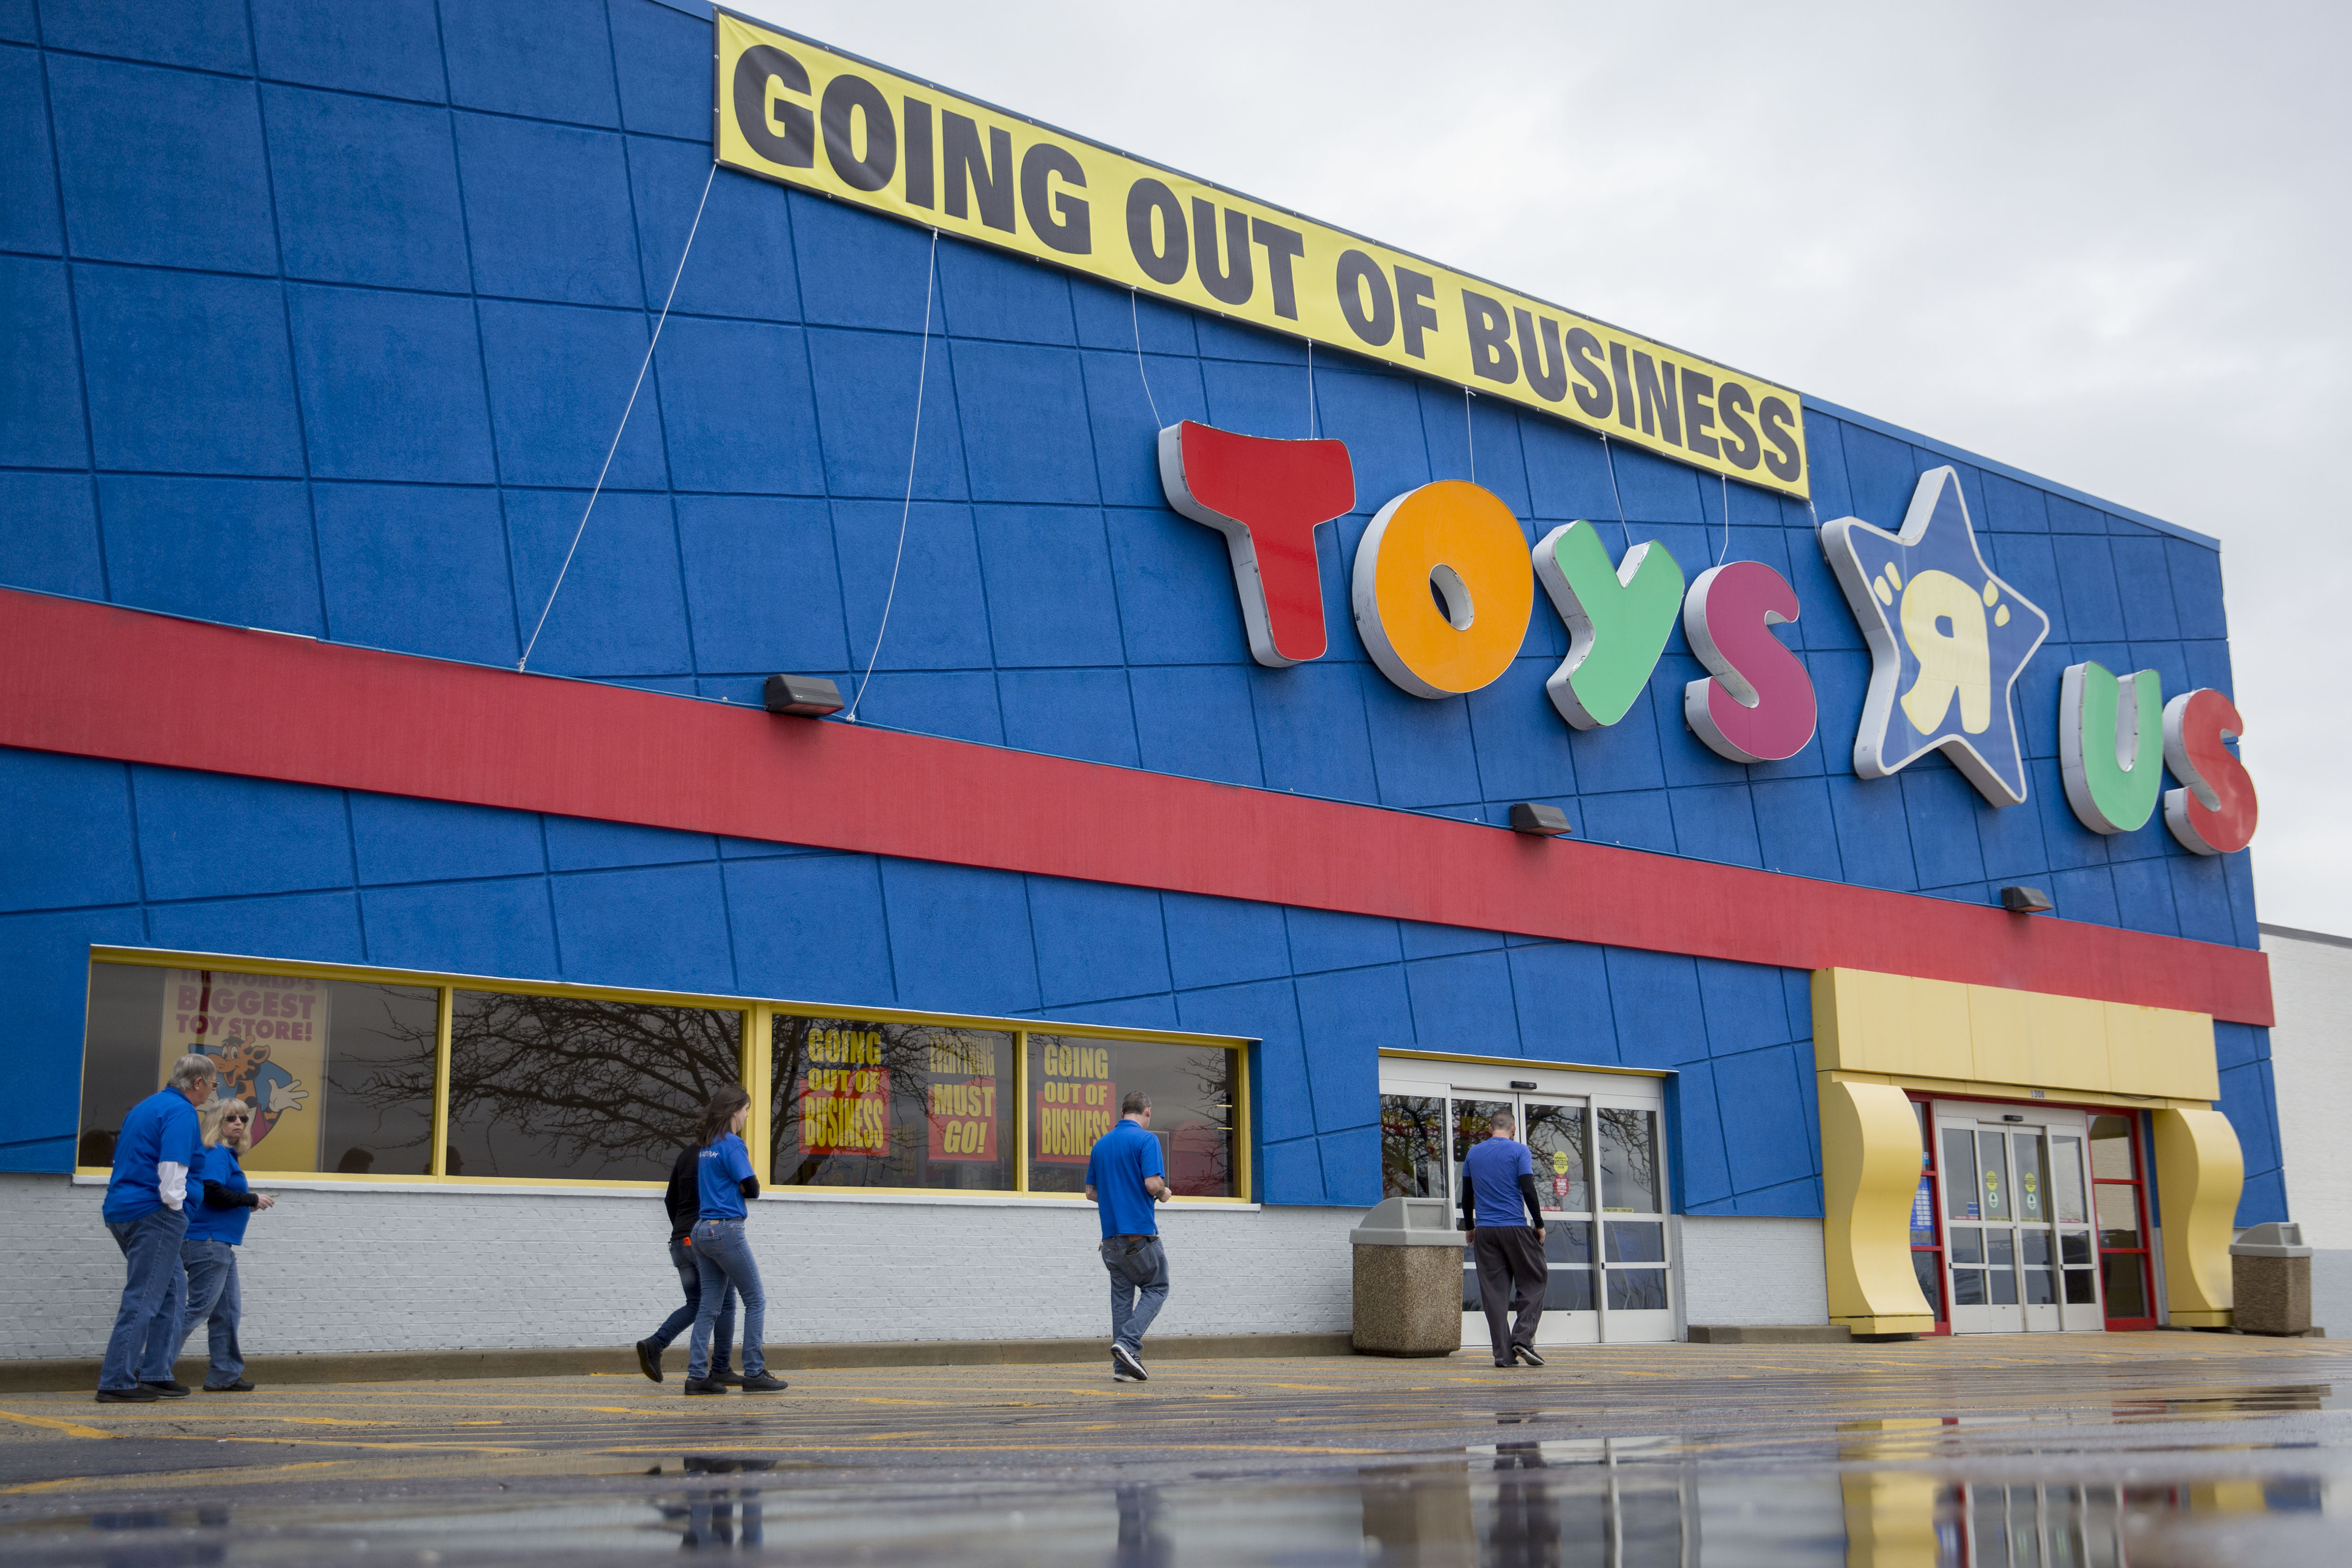 A Toys 'R' Us Store As Company Gets 11th-Hour Bid From Little Tikes's Larian